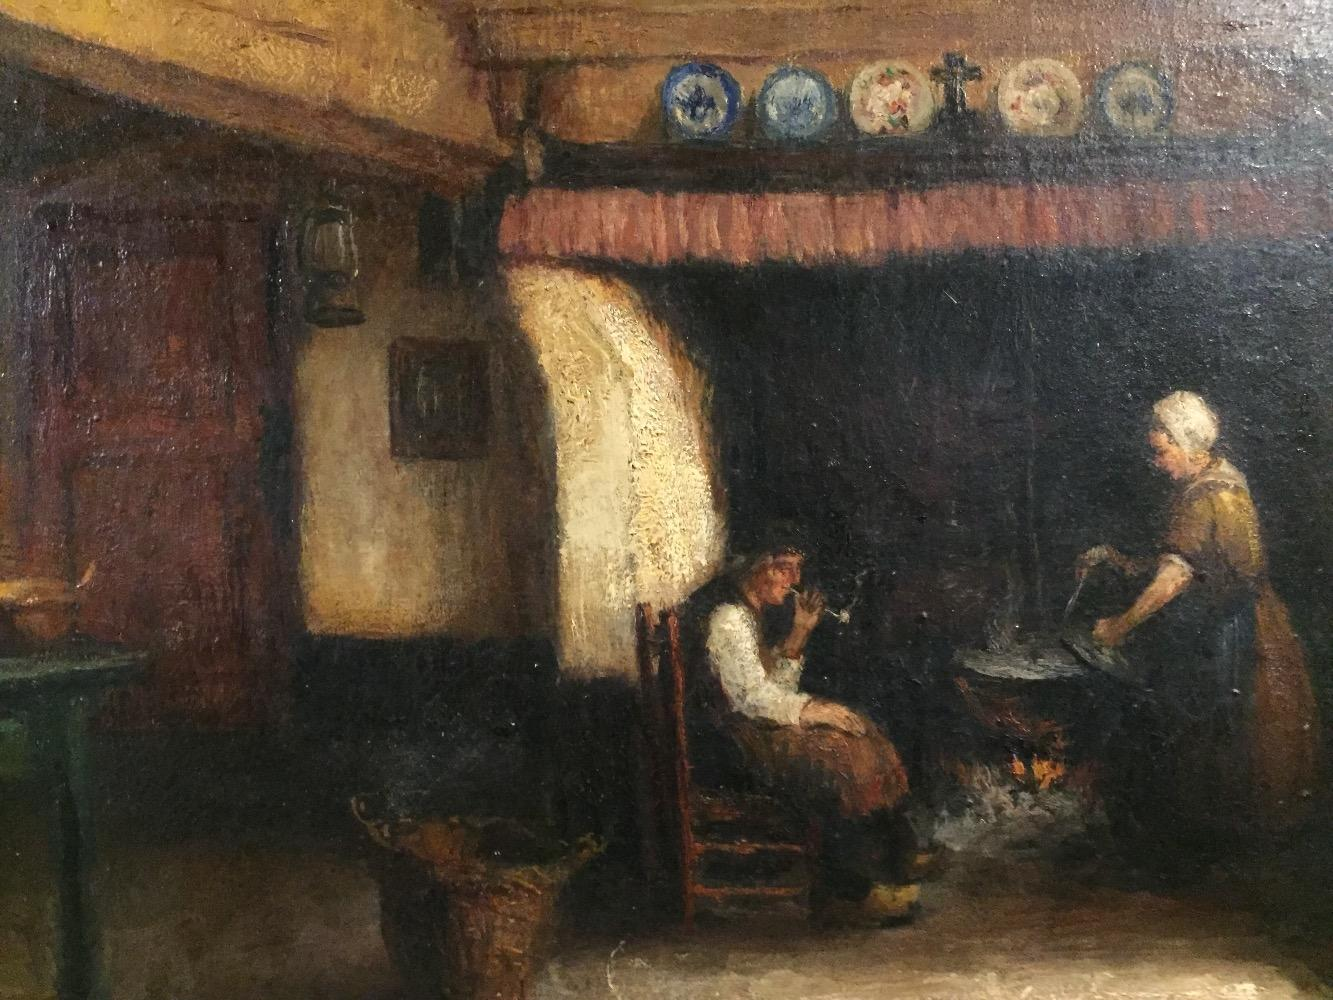 Woman and man in the kitchen